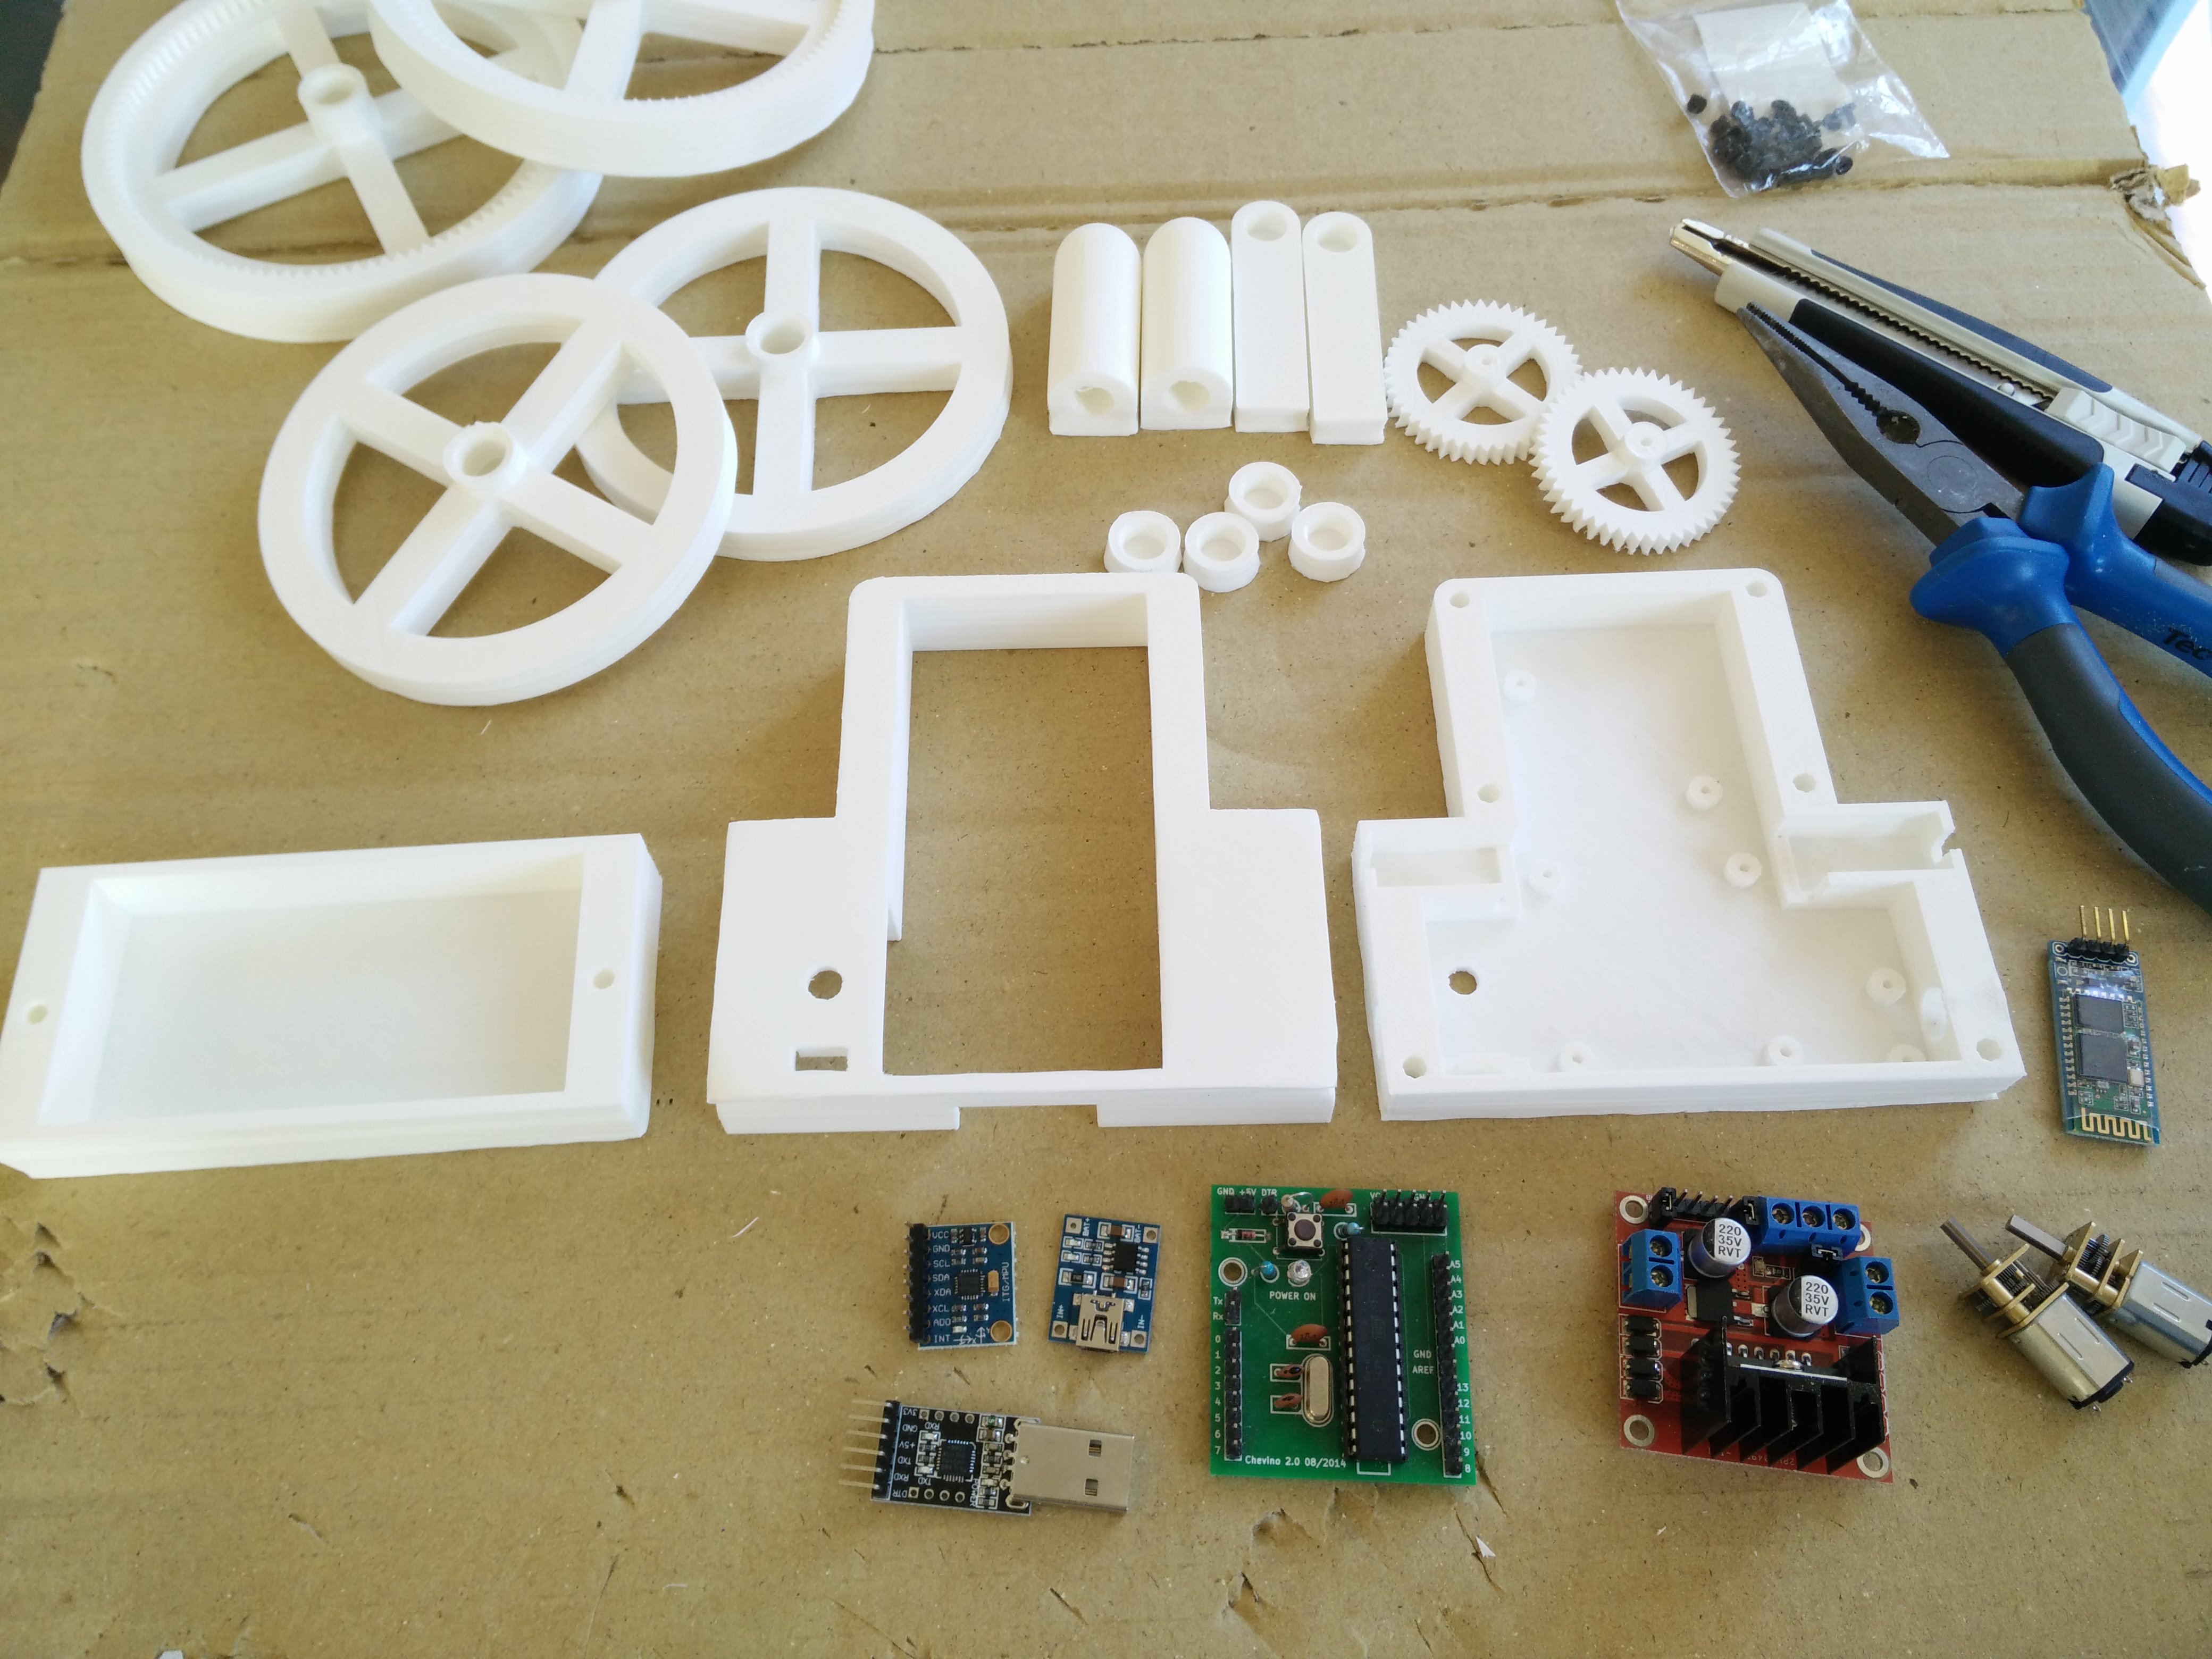 Every part is printed, the robot is now ready to be built